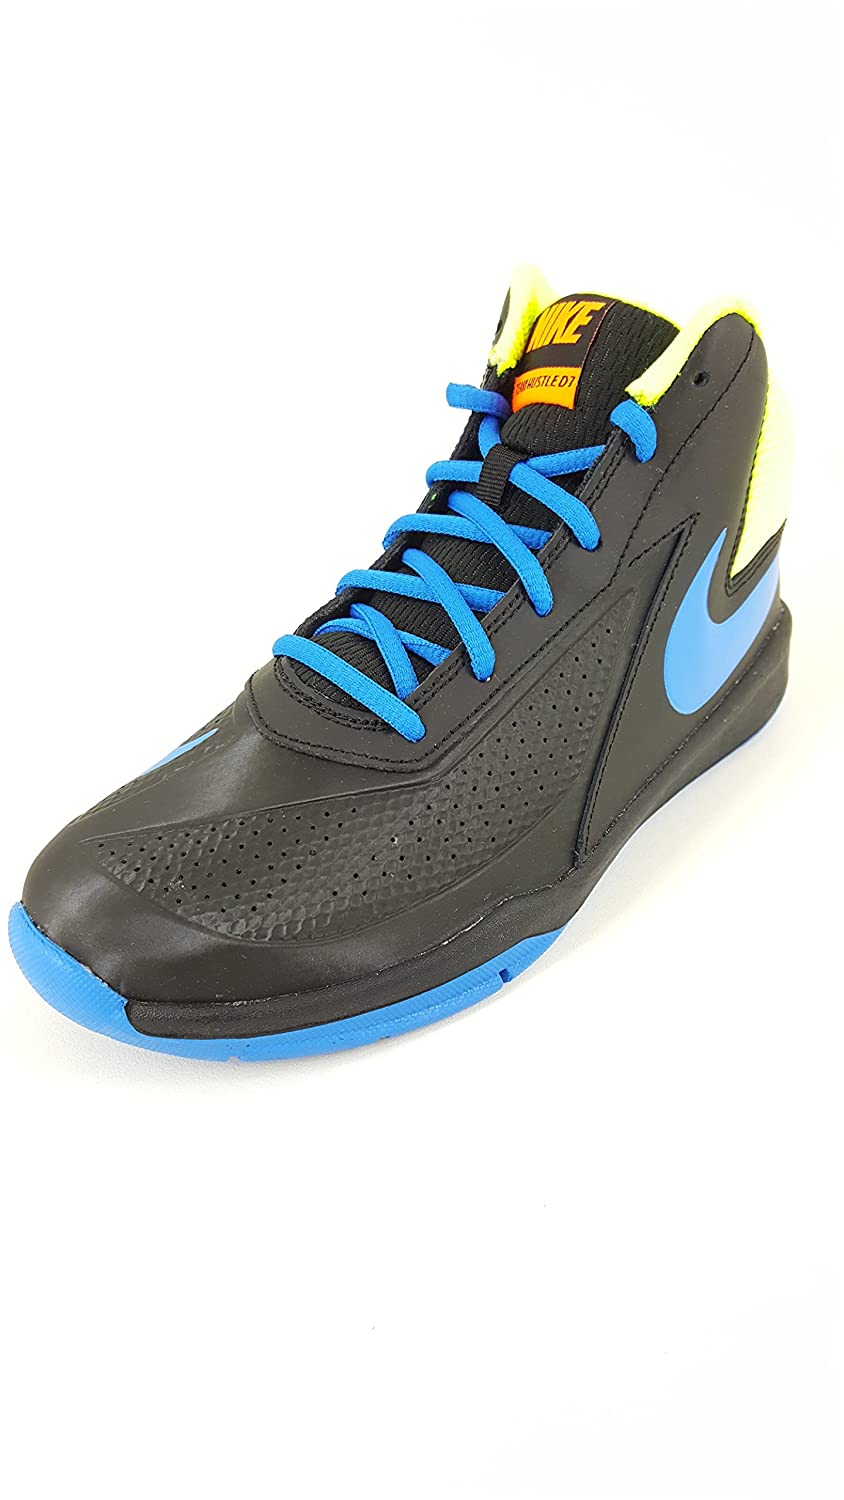 9249e4ce6e Amazon.com | NIKE Team Hustle D 7 (GS) Size 7 | Basketball